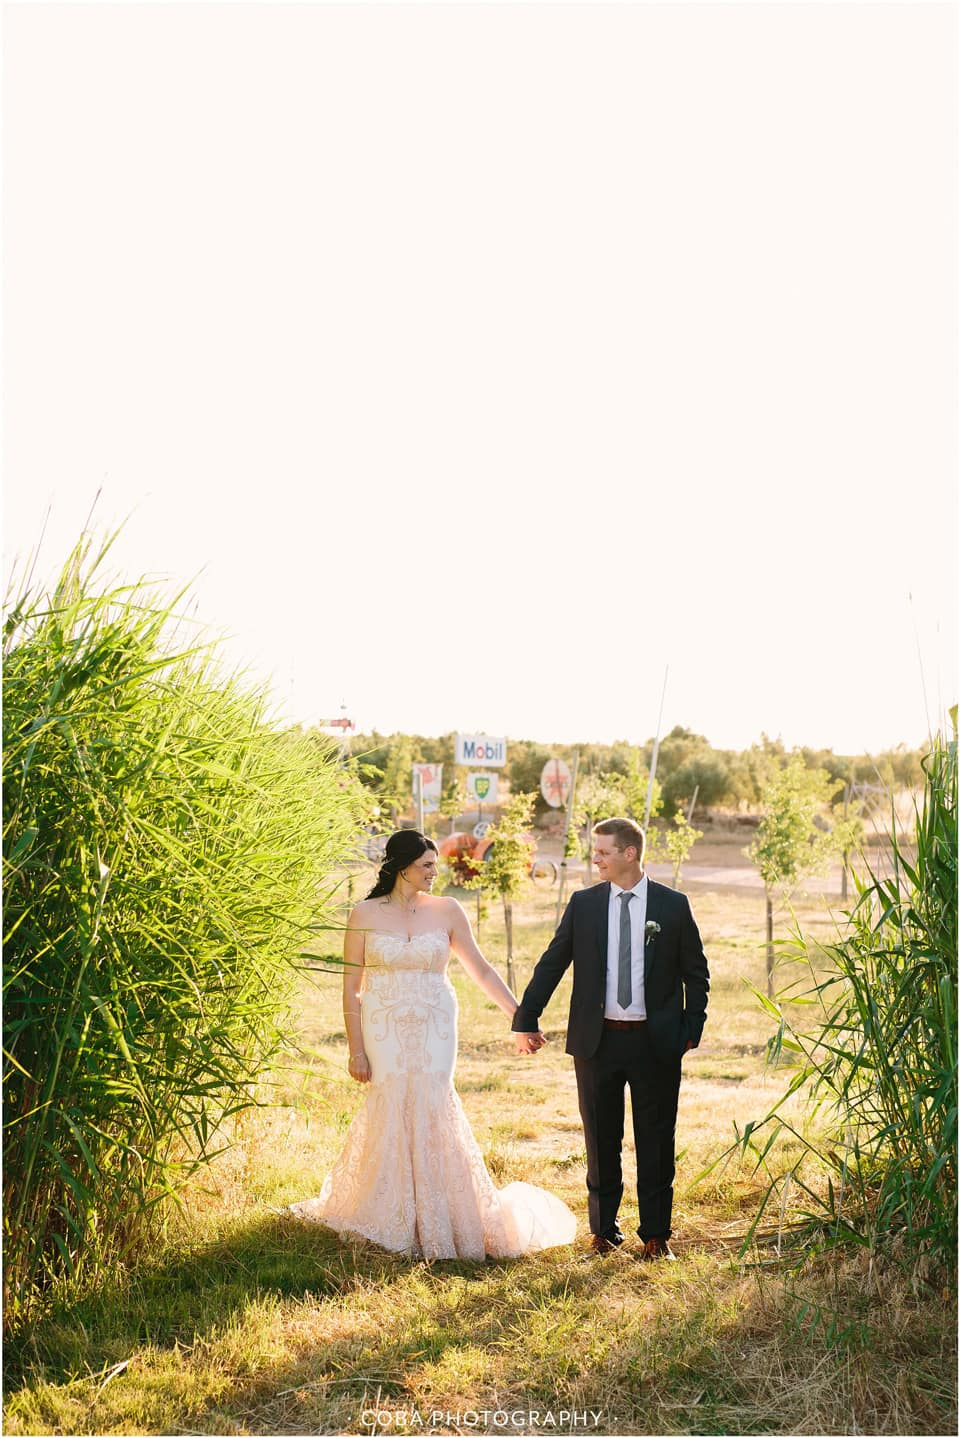 martin-yolande-domaine-brahm-wedding-_-coba-photography-155